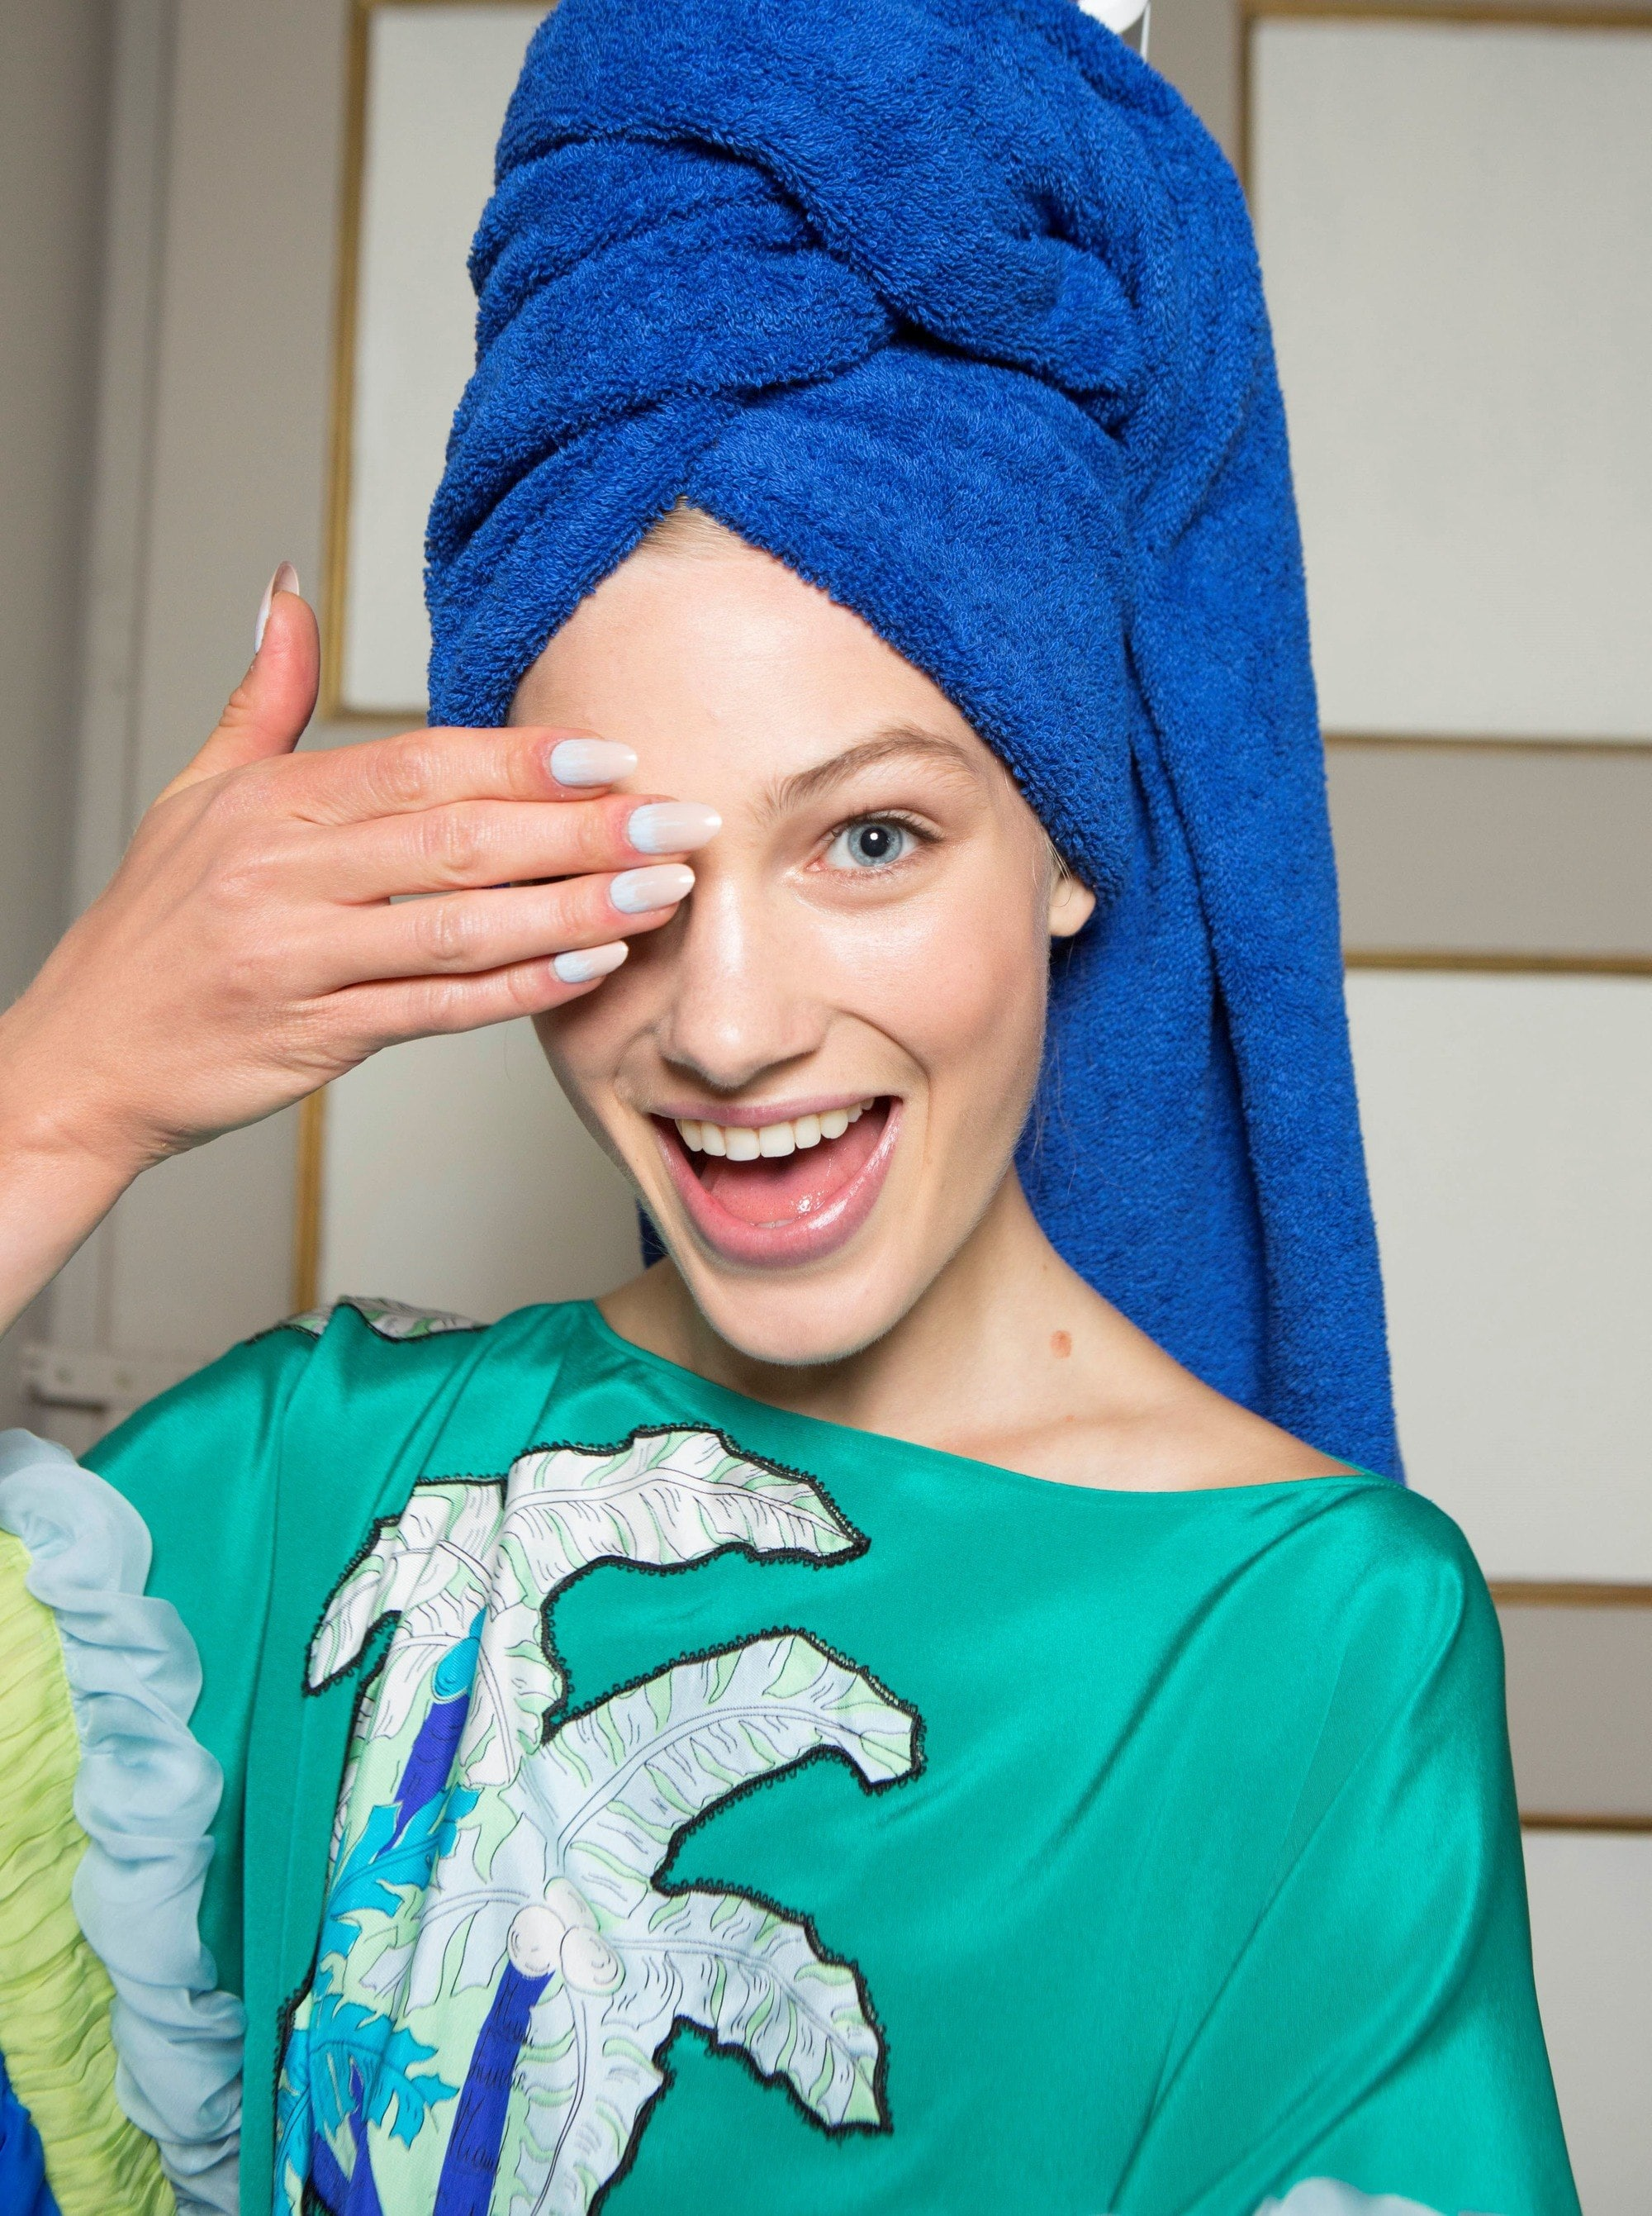 close up shot of woman with towel on her head, wearing blue dress and posing